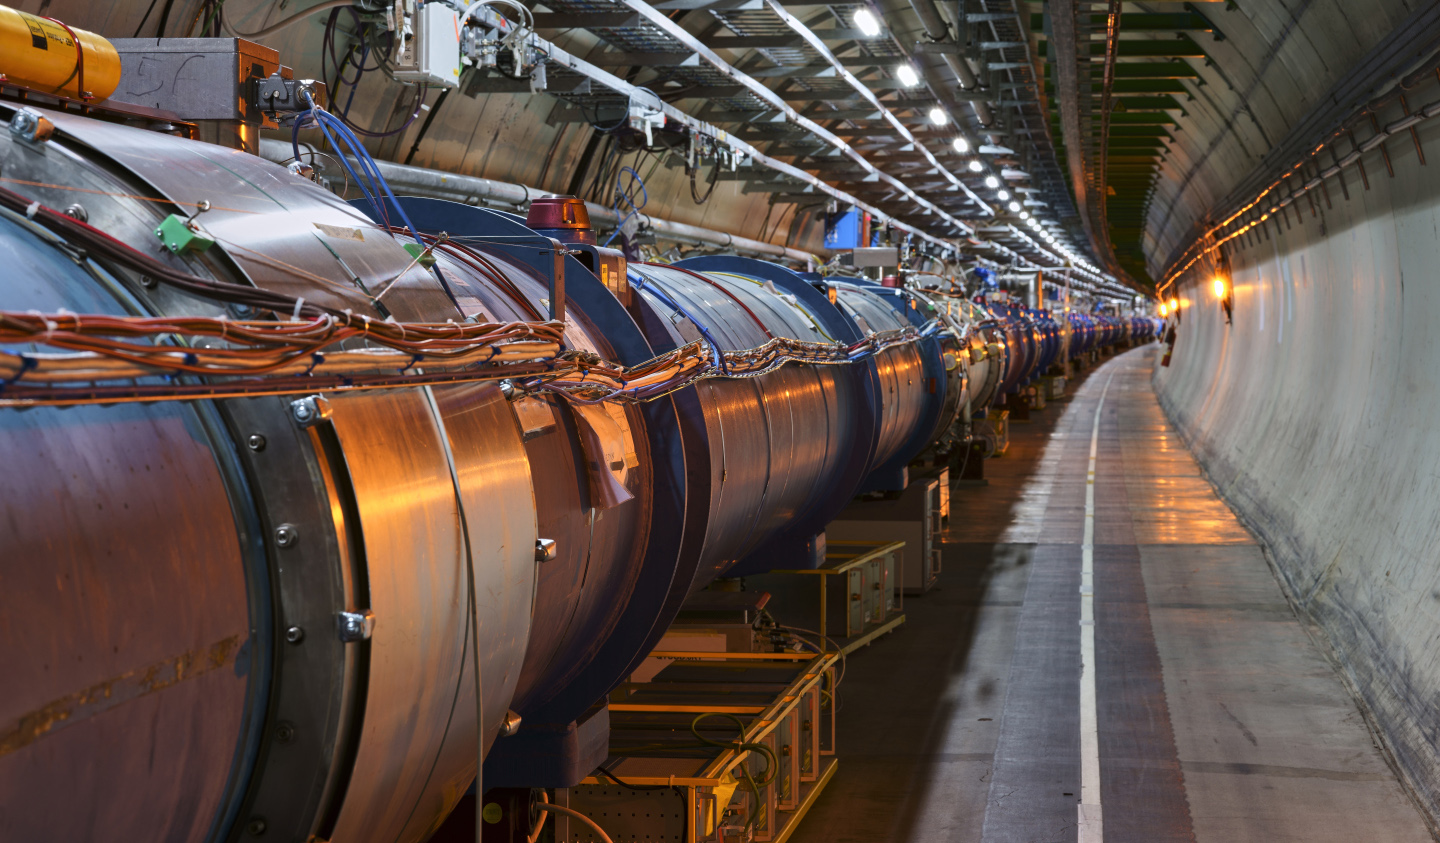 LHC WILL START UP AGAIN IN MAY 2021